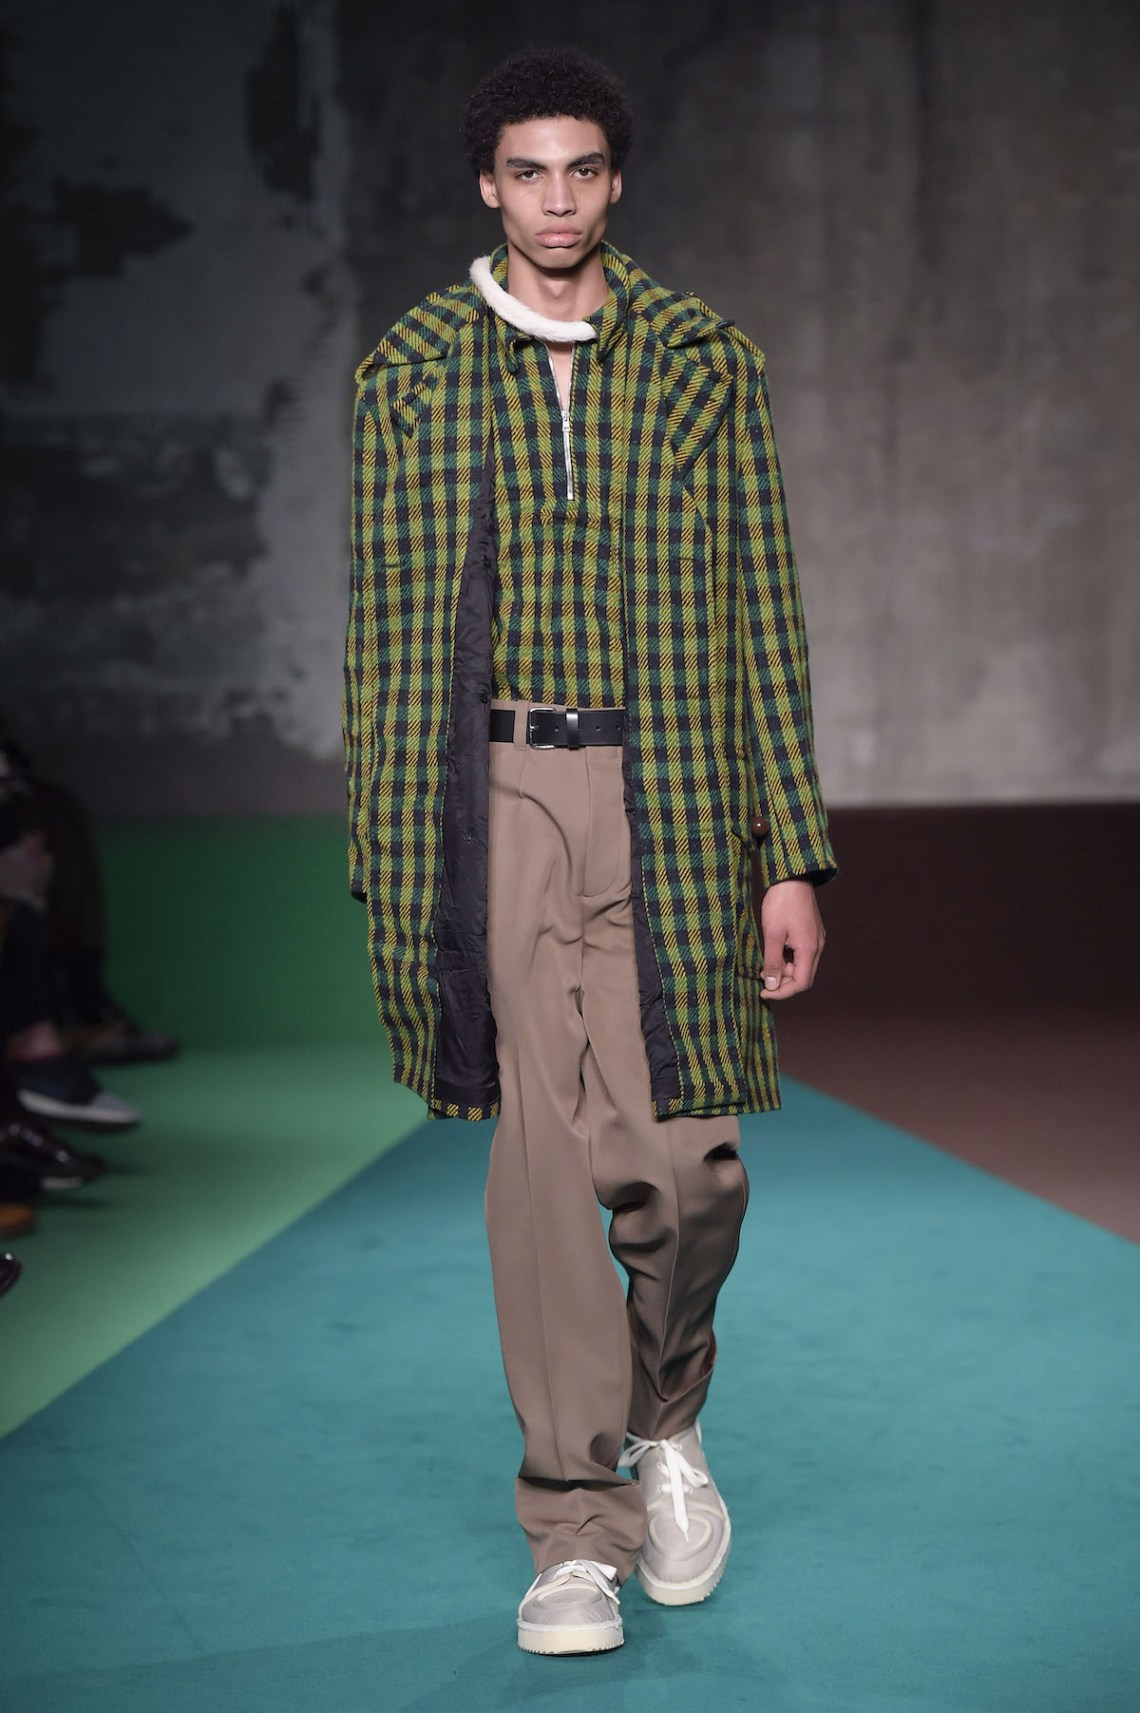 MARNI - Fall Winter 2017/18